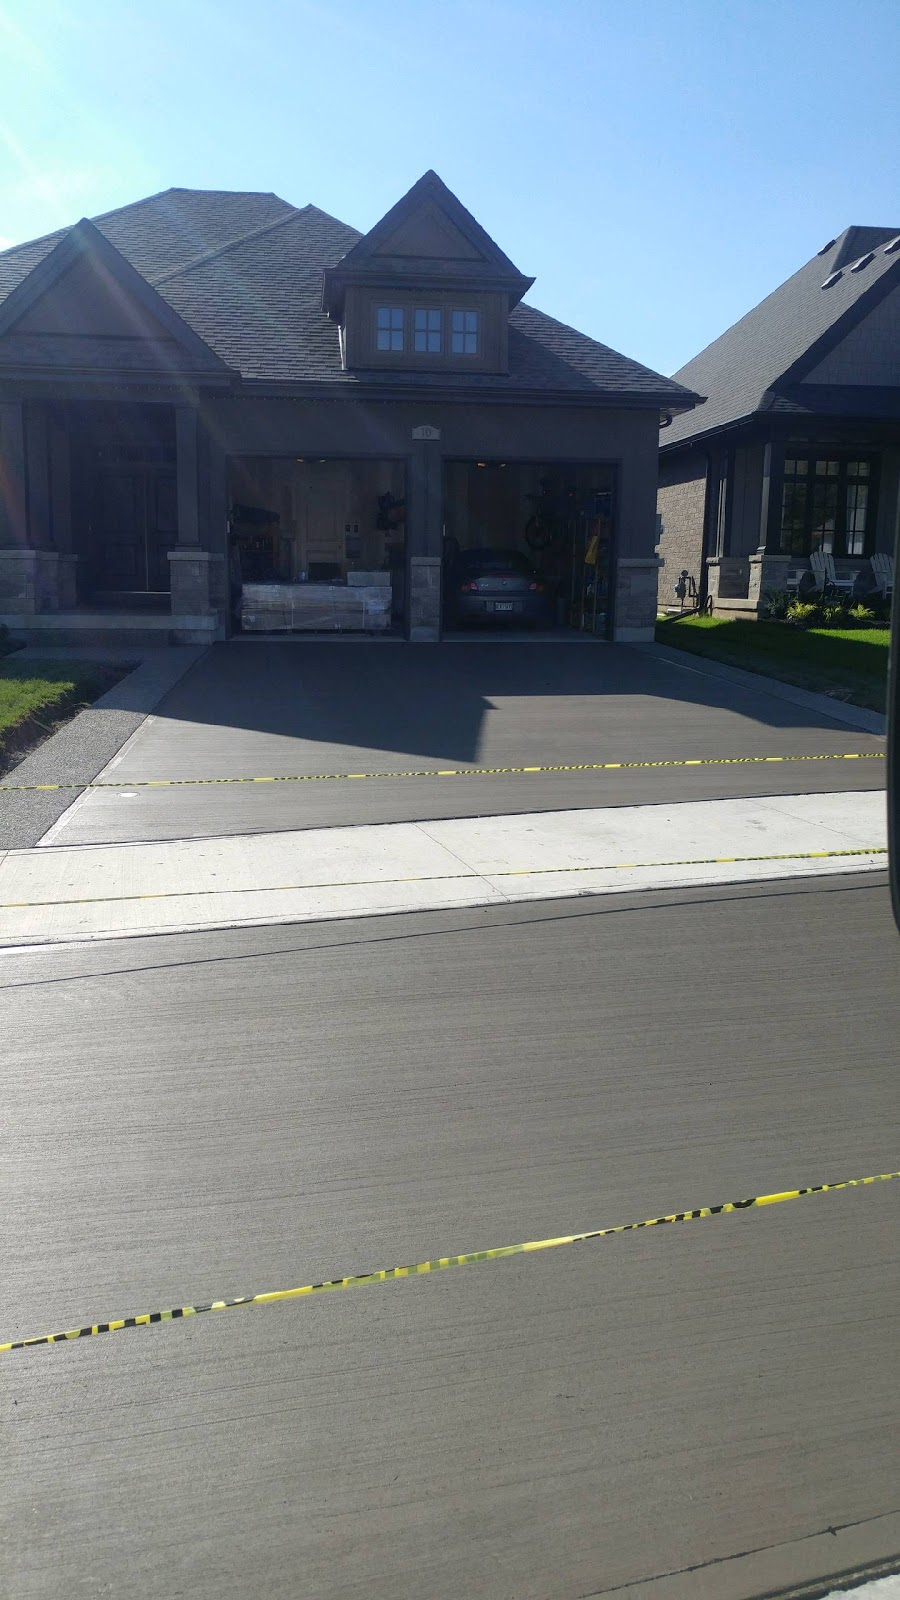 Joes Concrete Work | point of interest | 7868 Oakwood Dr Unit G, Niagara Falls, ON L2E 6S5, Canada | 9053747550 OR +1 905-374-7550